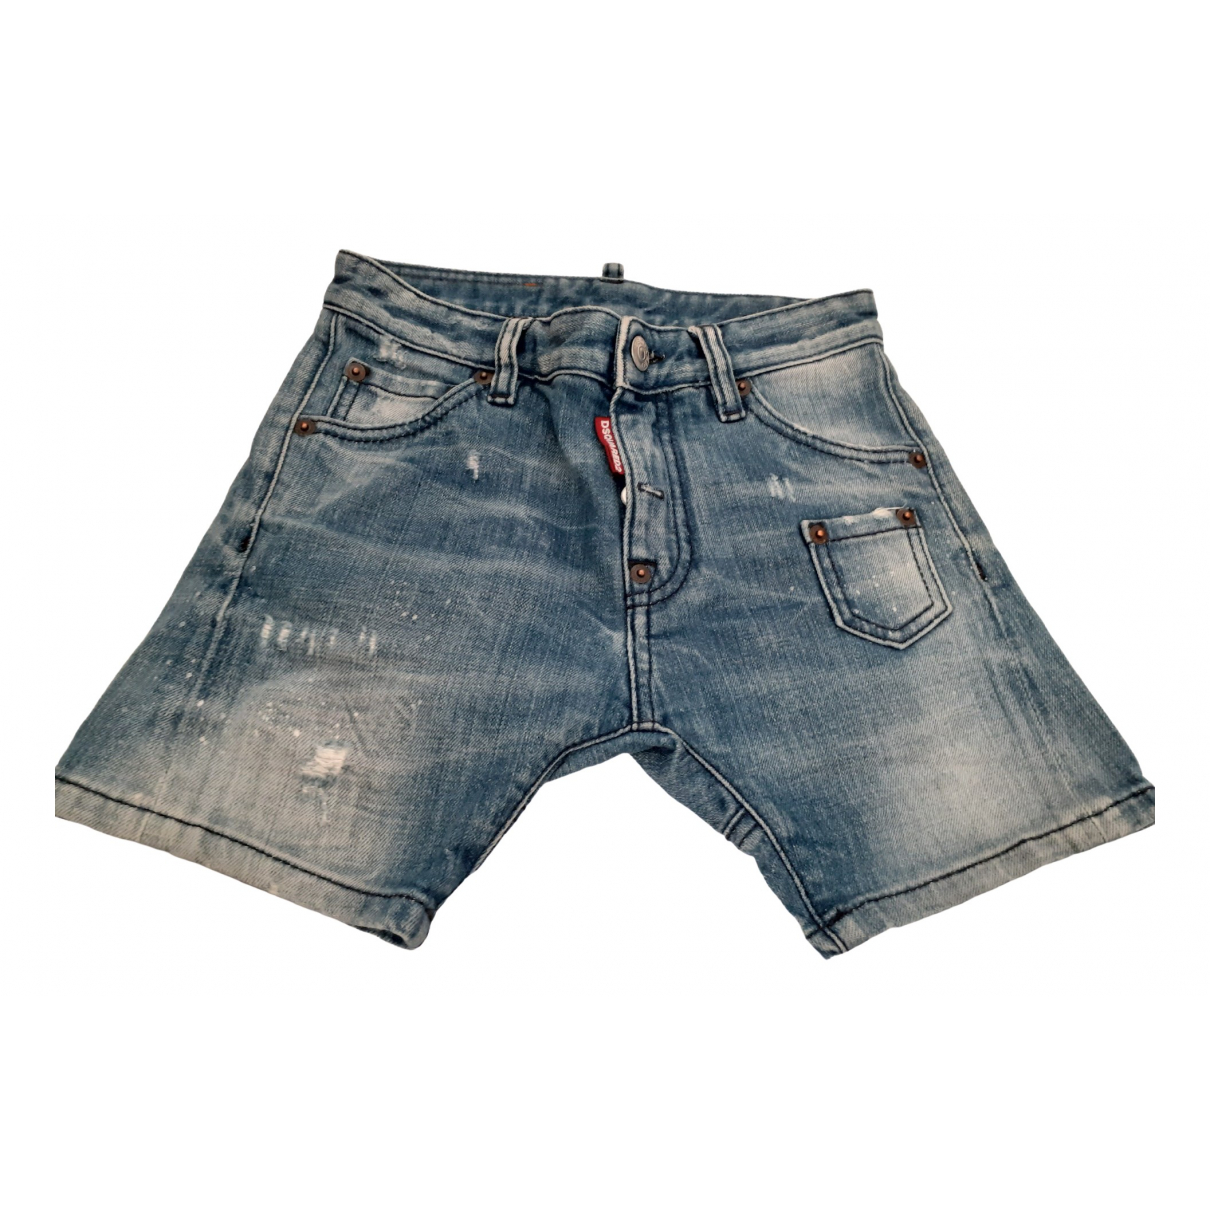 Dsquared2 \N Blue Denim - Jeans Shorts for Kids 8 years - until 50 inches UK